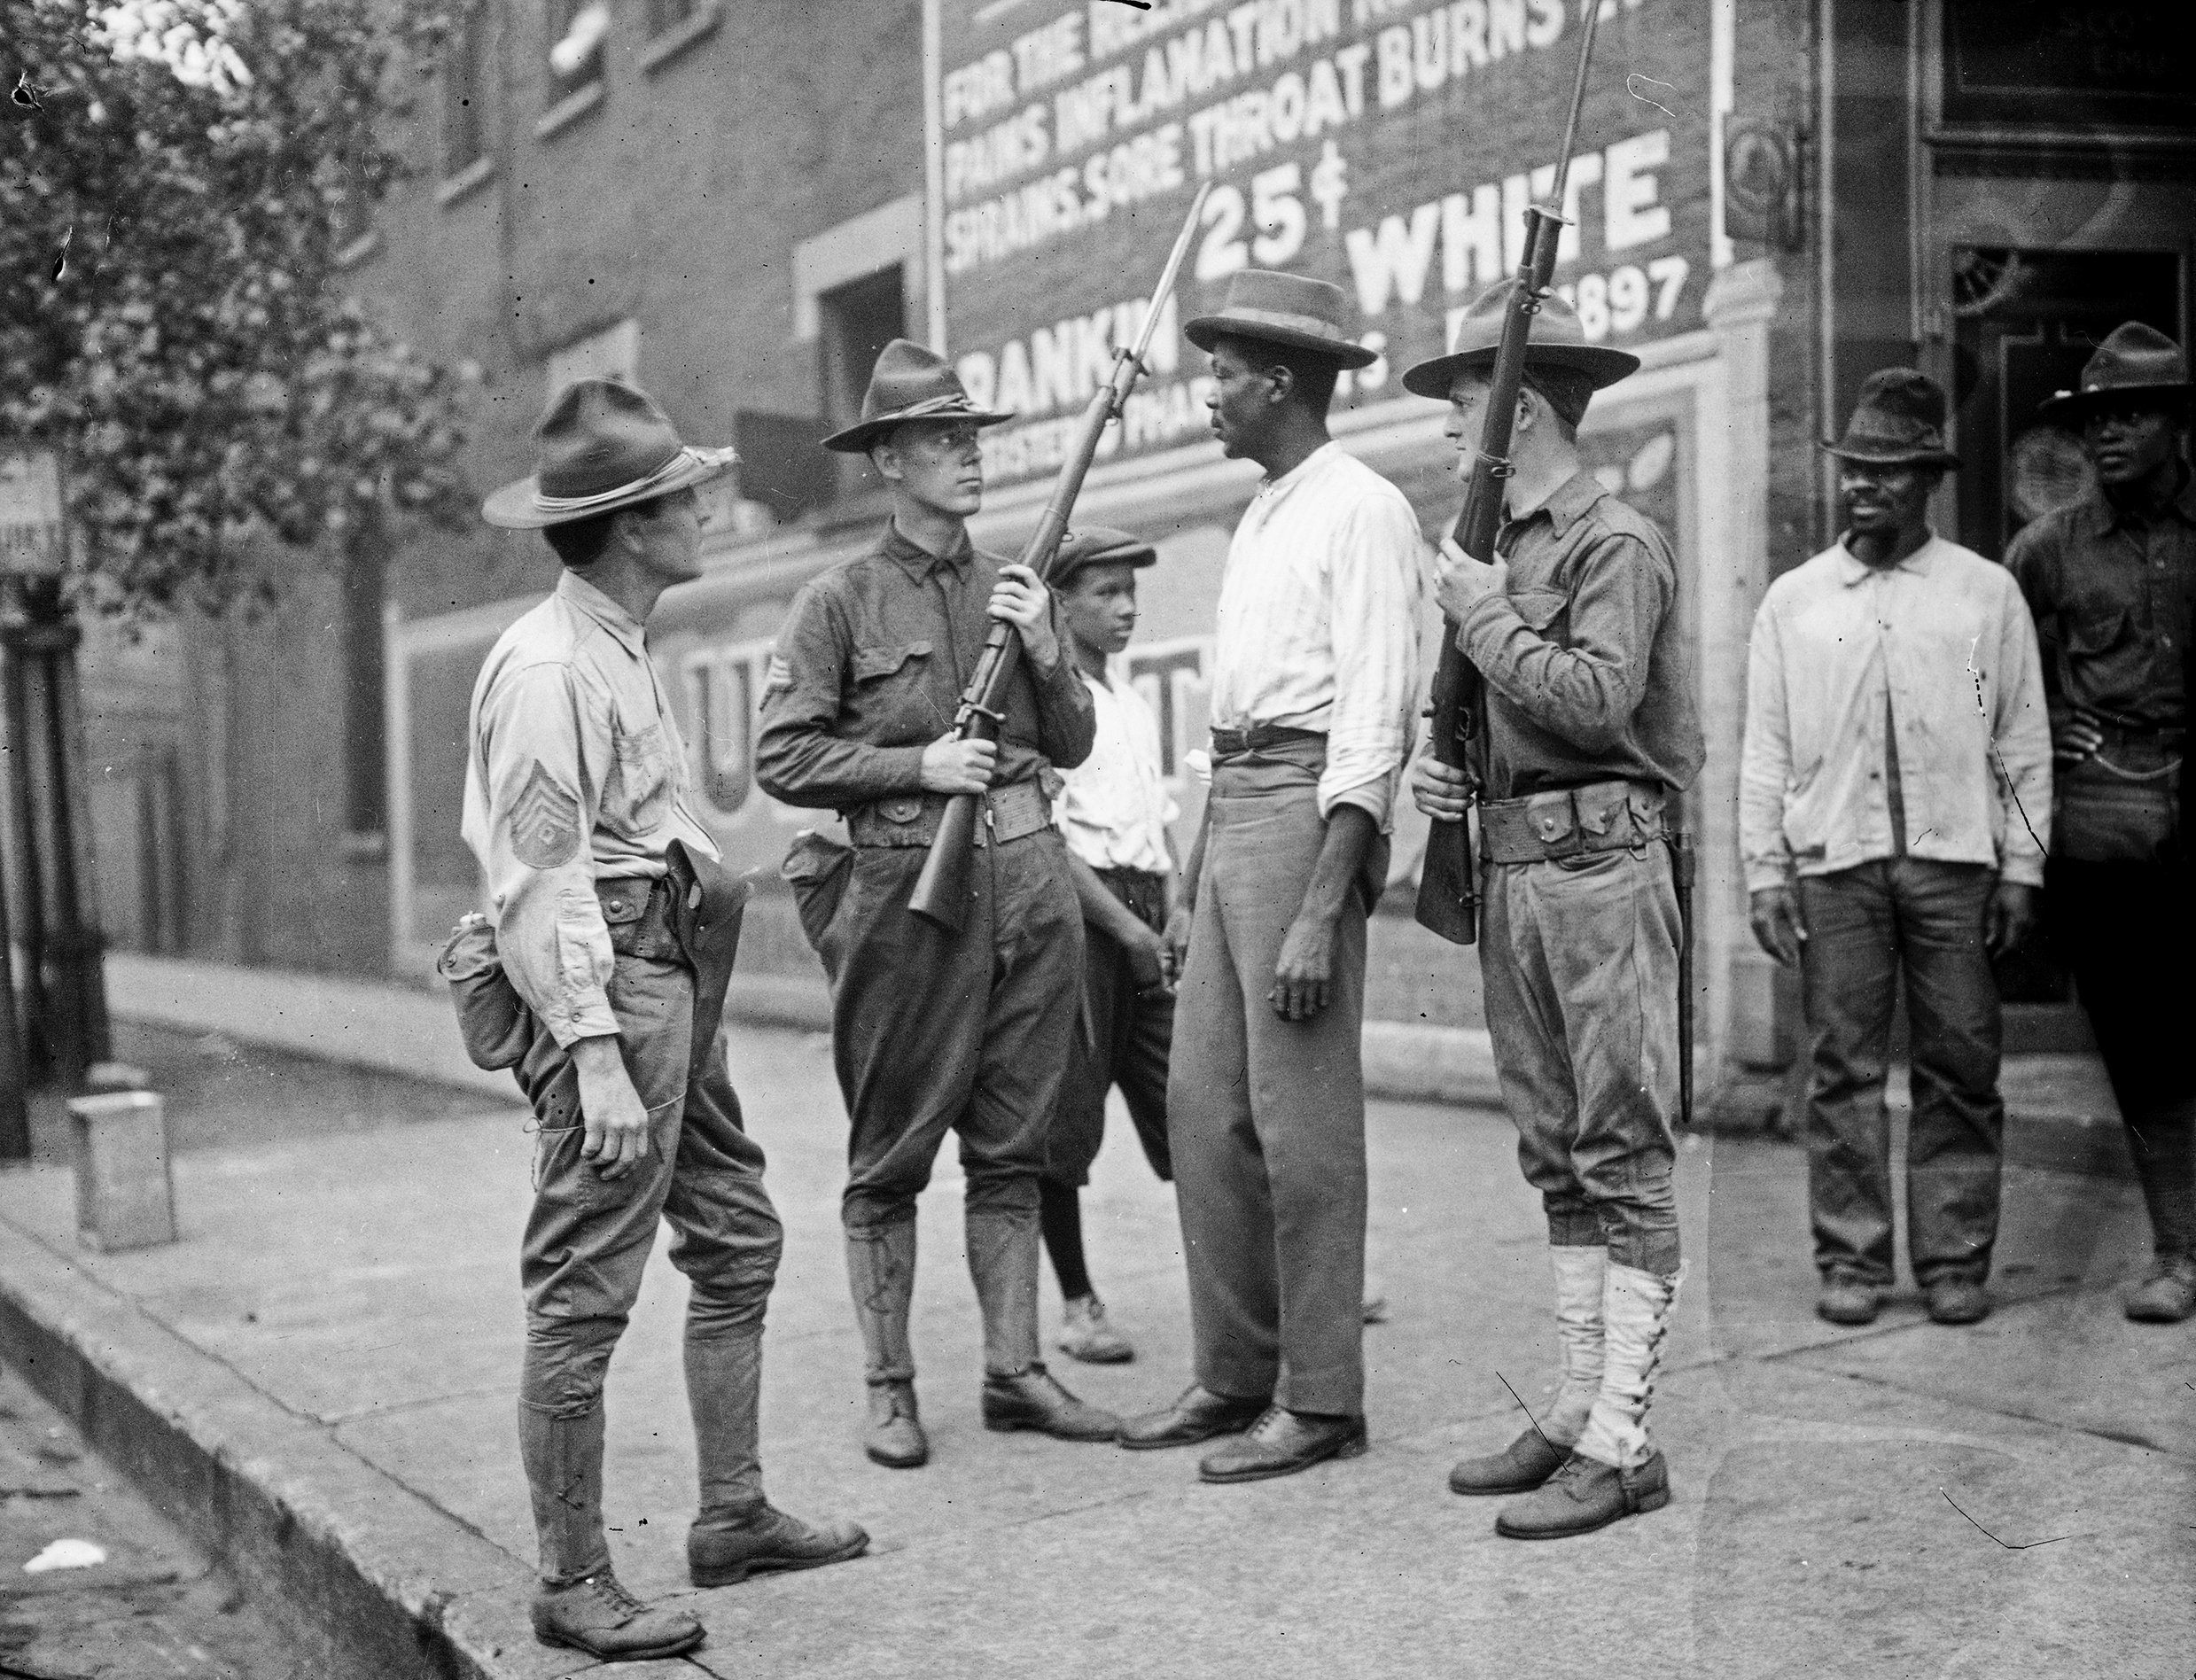 Segregation among issues Chicago faces 100 years after riots